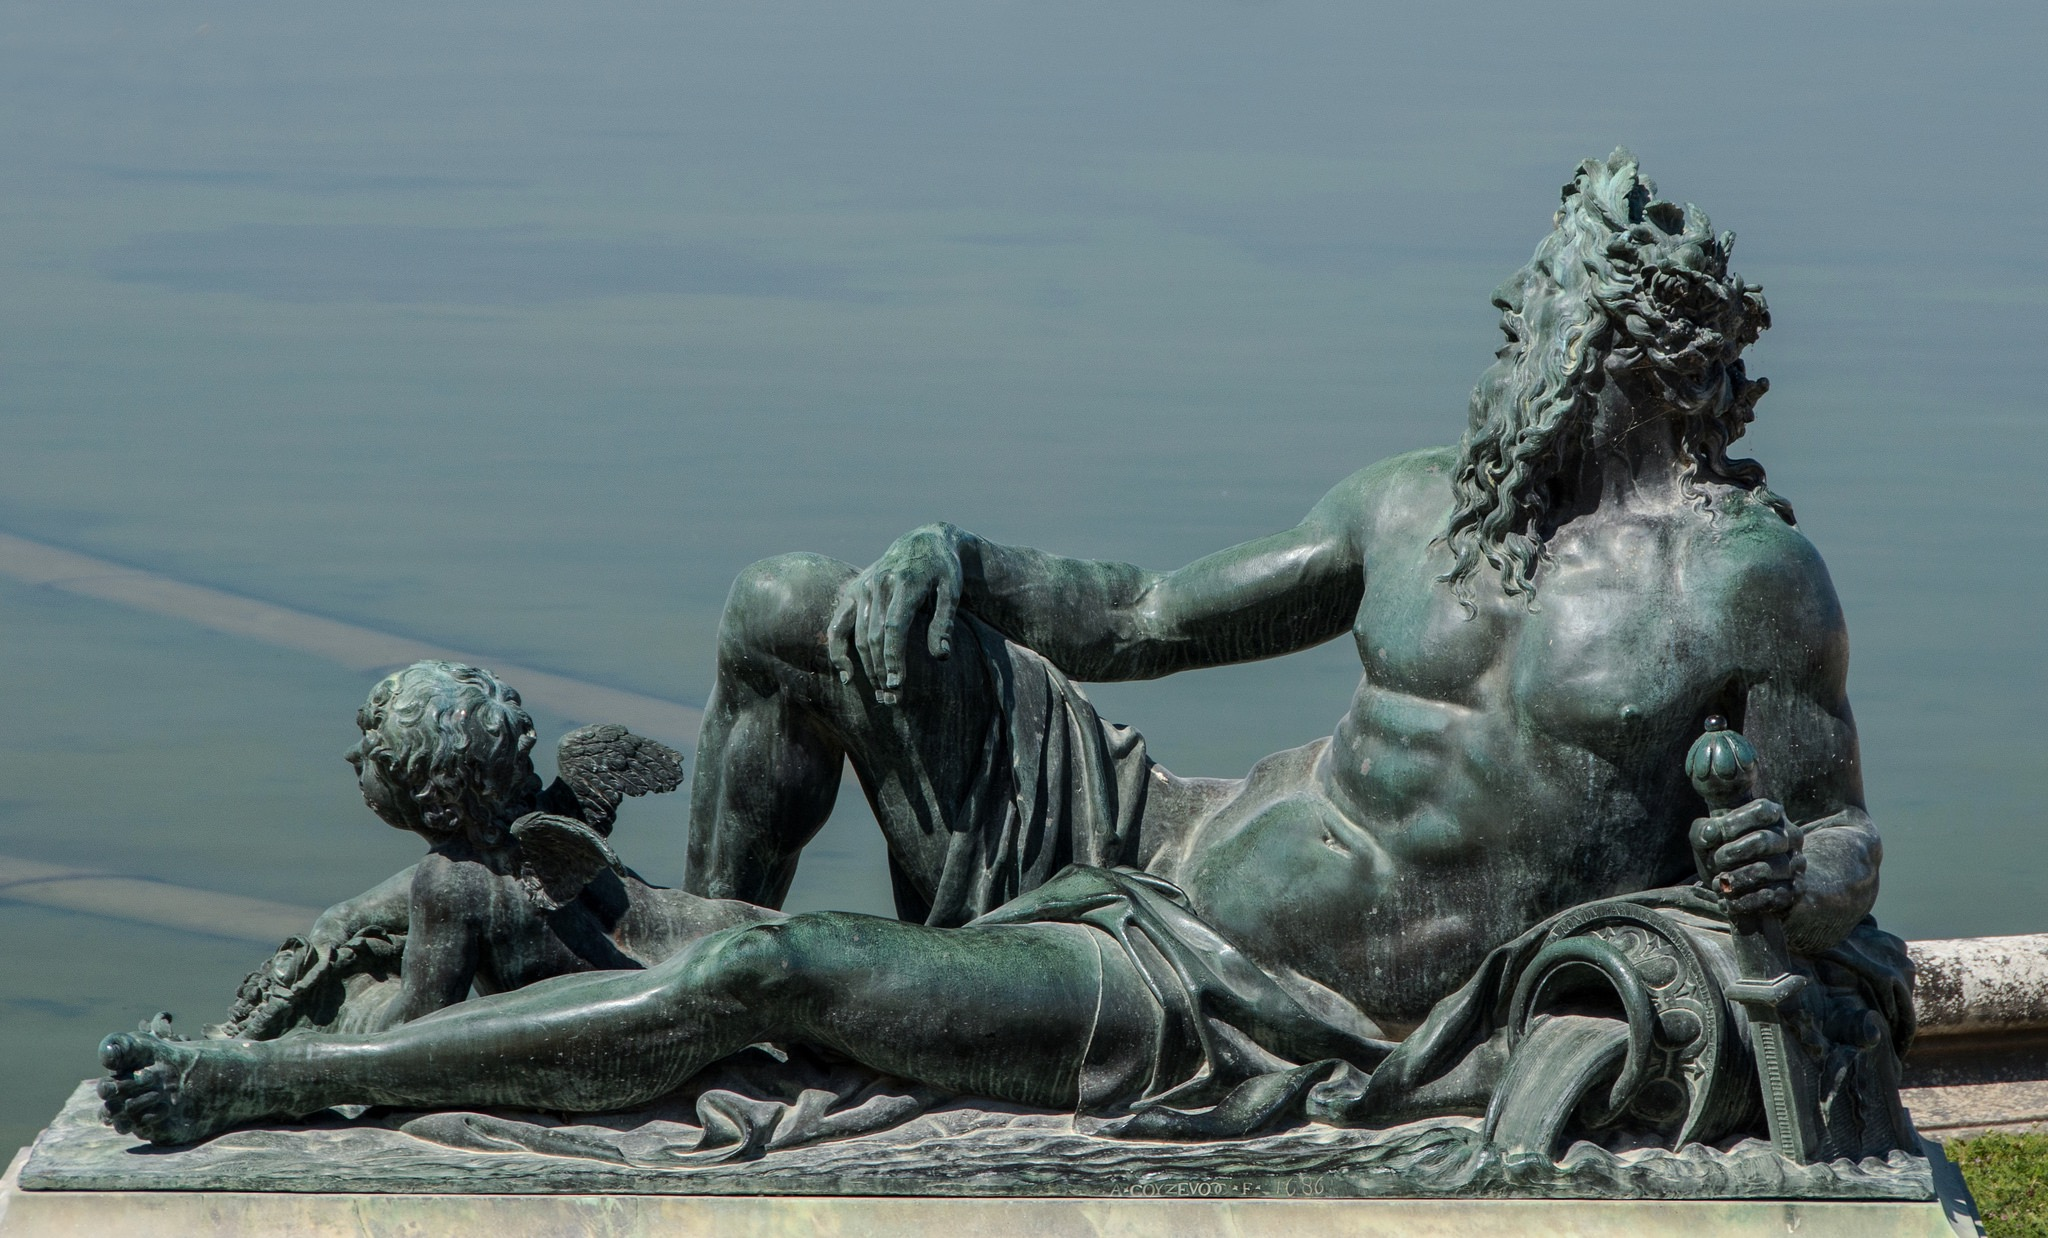 Neptune. Château de Versailles (France), 2012, photo de Bastiaan_65 sur Flickr